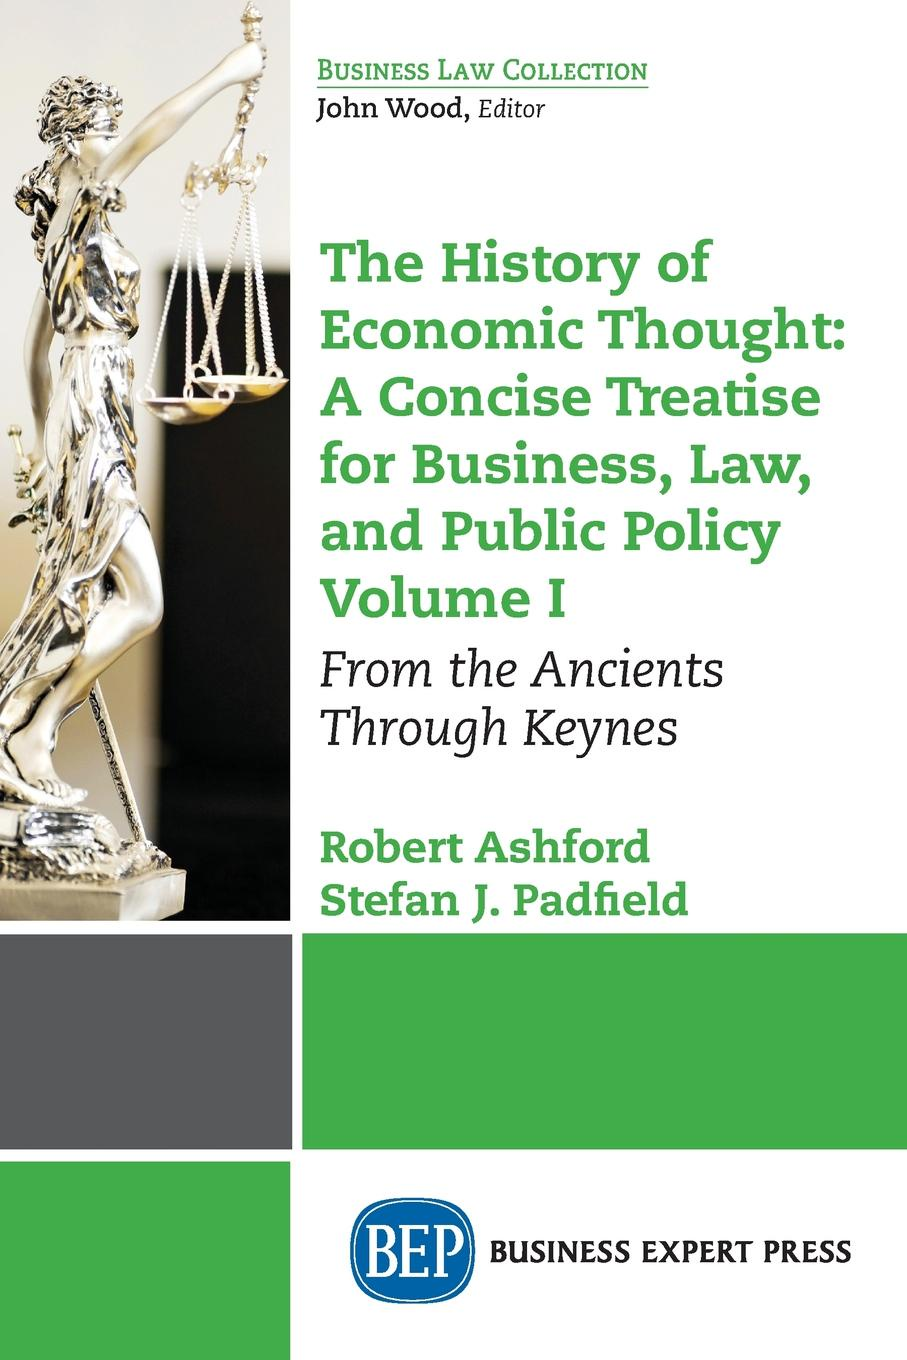 Robert Ashford, Stefan J. Padfield The History of Economic Thought. A Concise Treatise for Business, Law, and Public Policy Volume I: From the Ancients Through Keynes